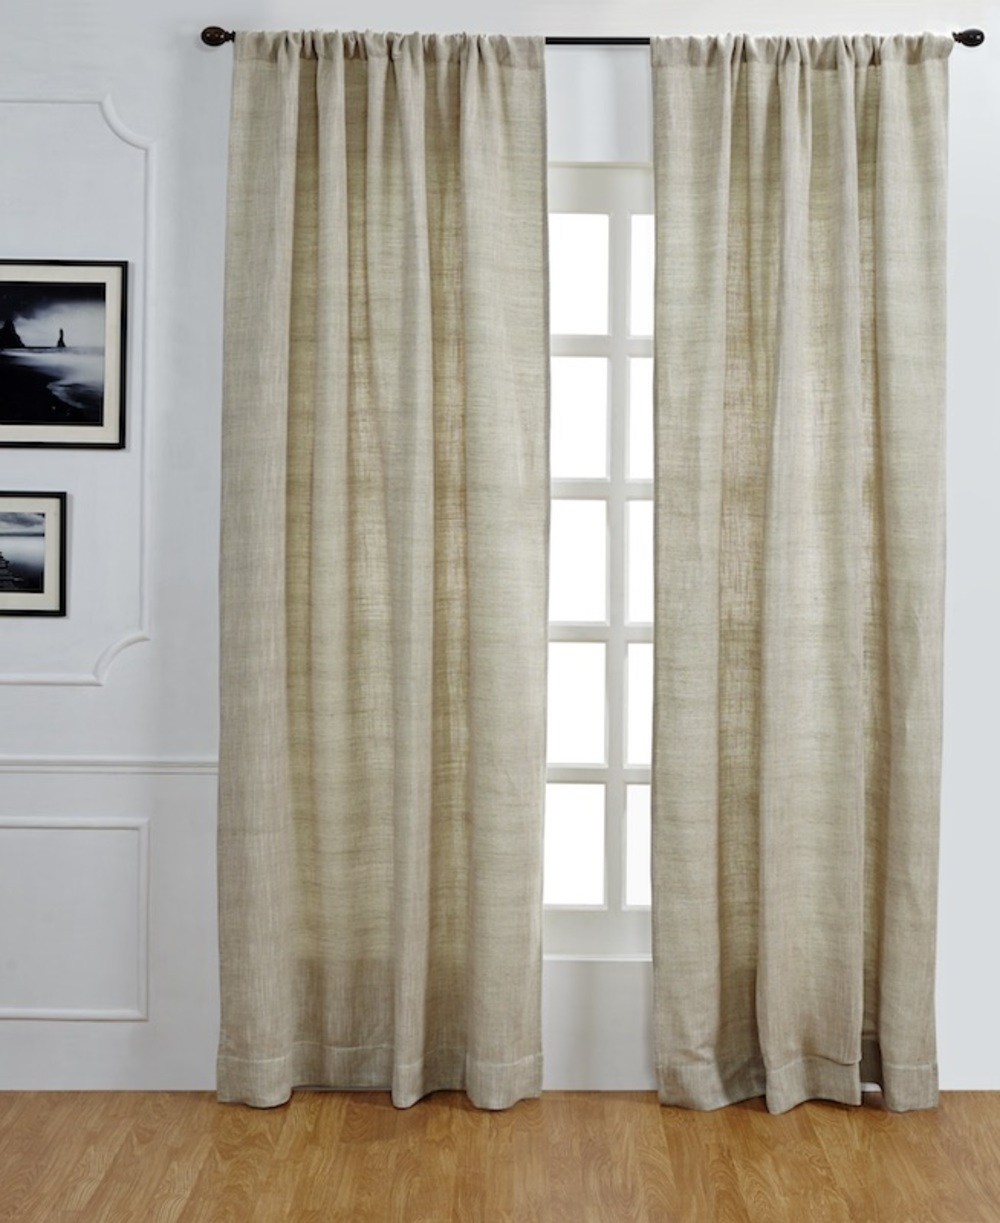 Amity Imports - Jerome Linen and Cotton Curtain